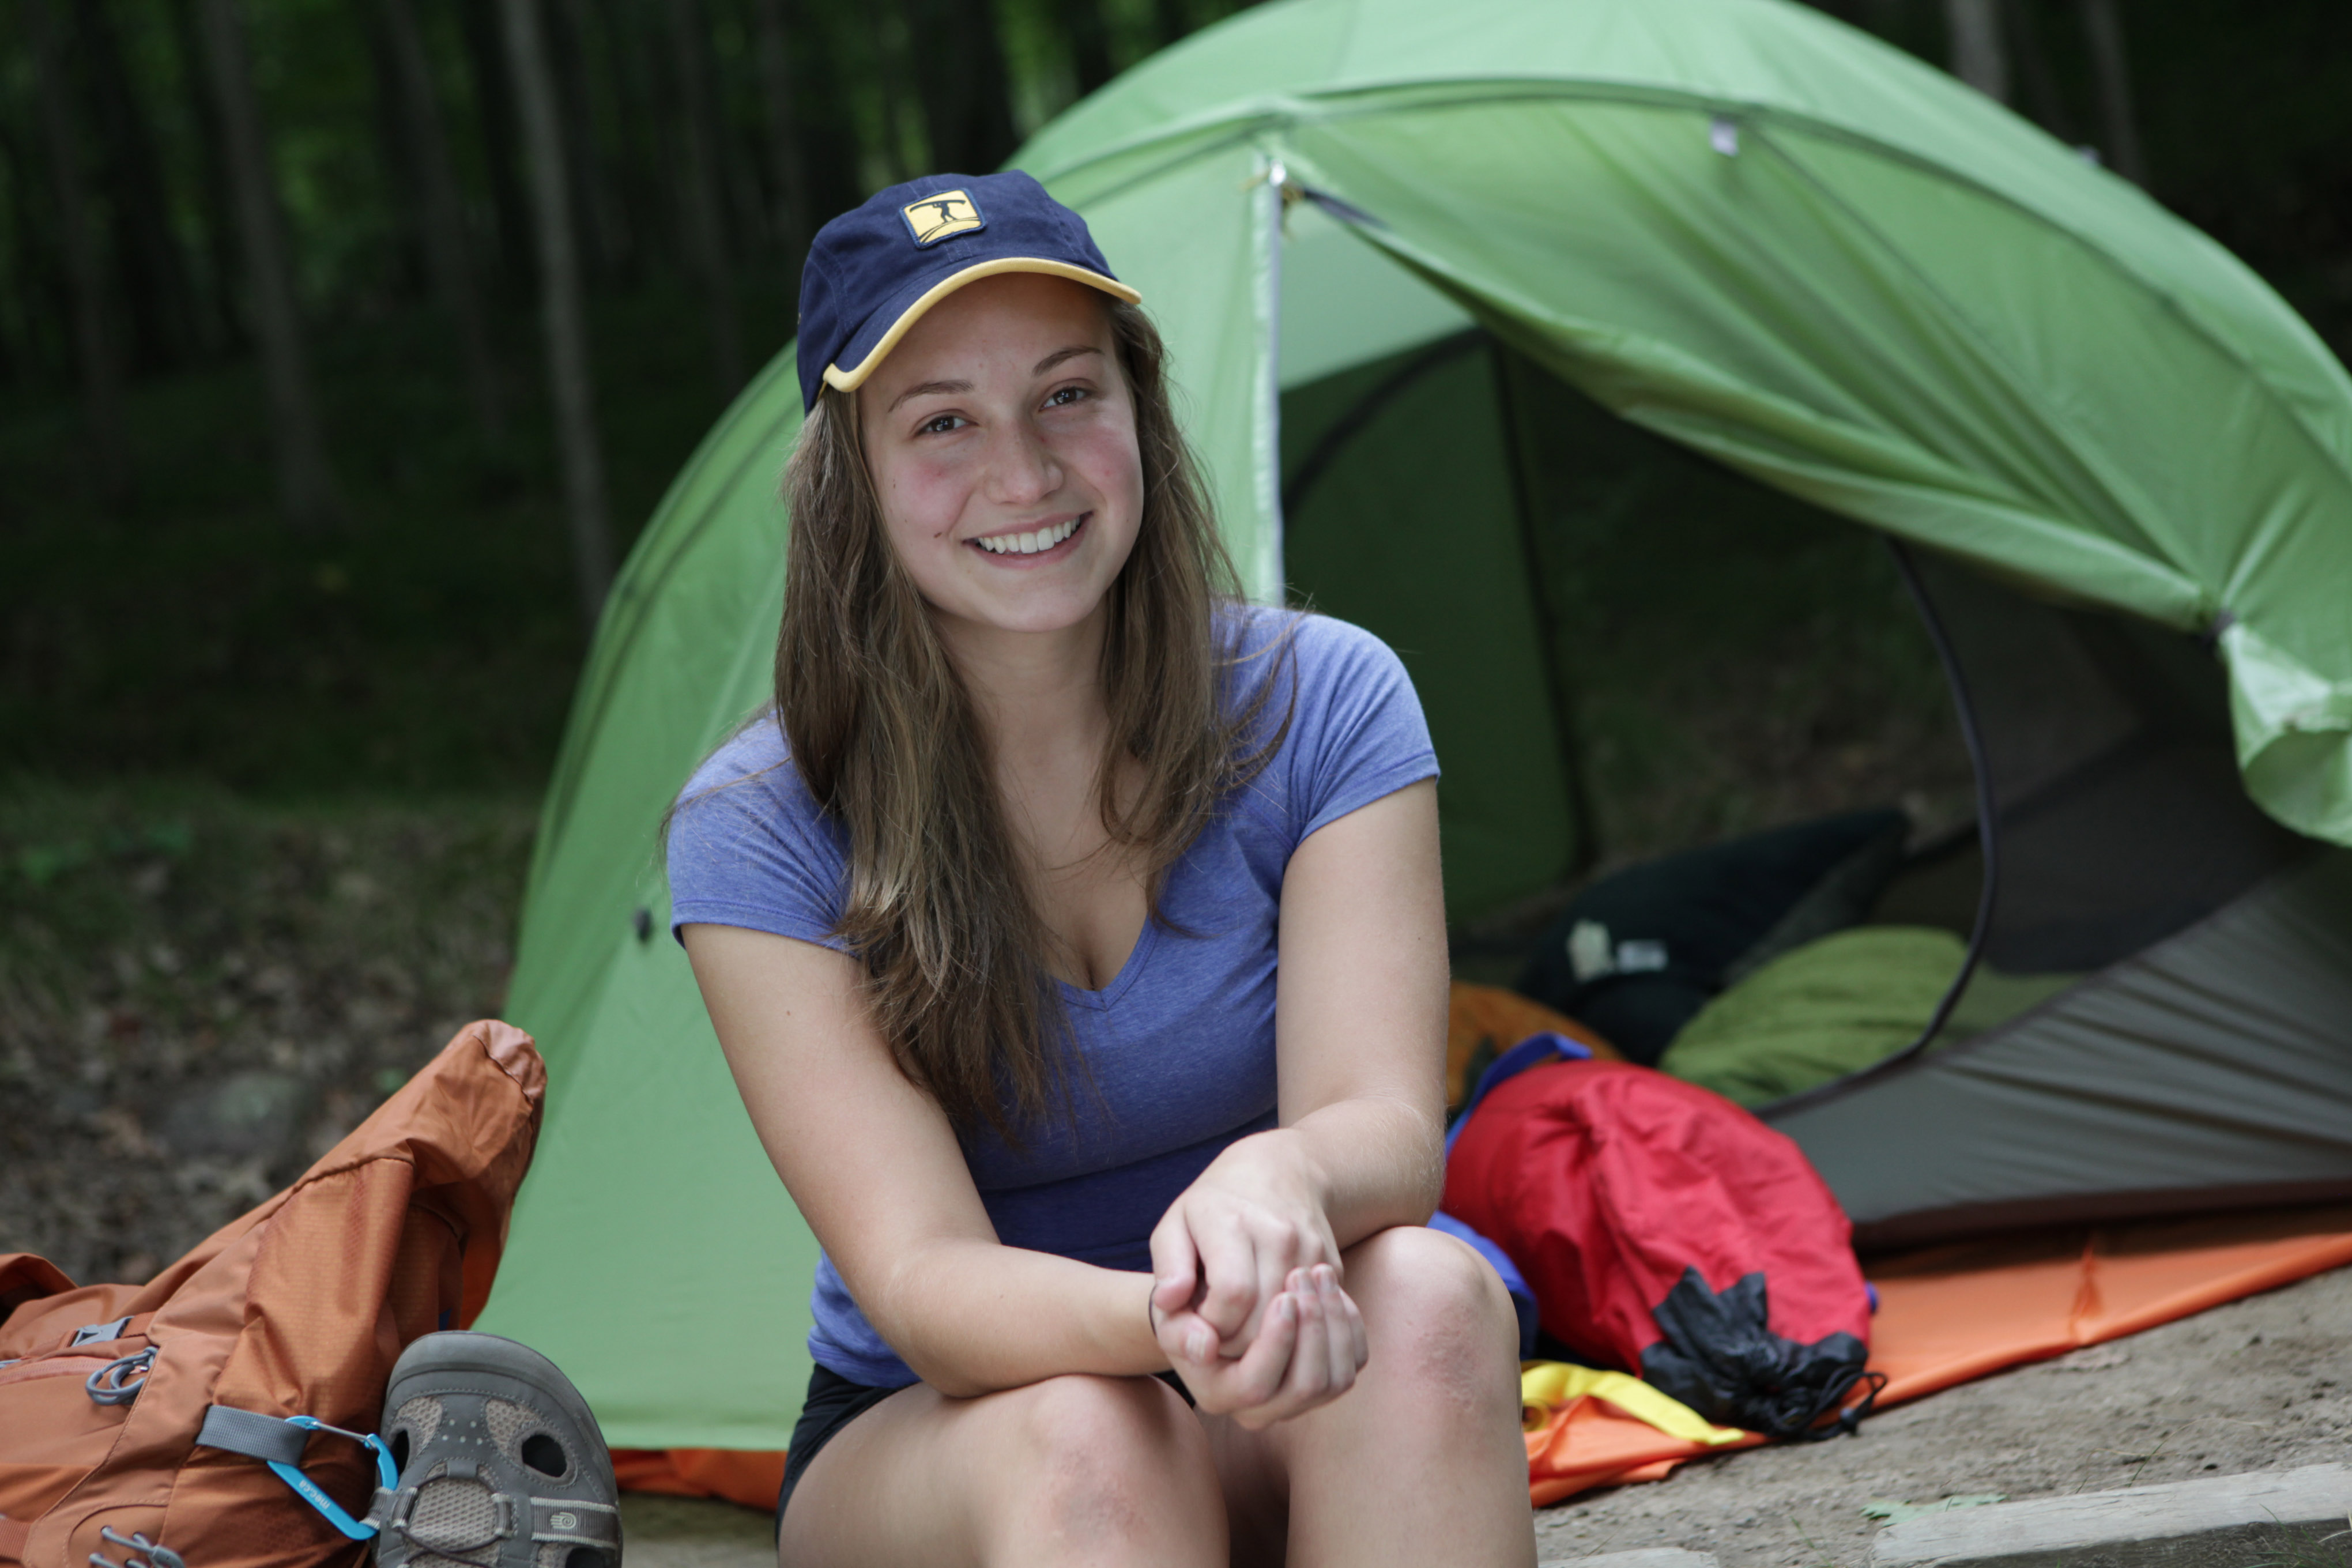 Image of a woman smiling infront of a tent.